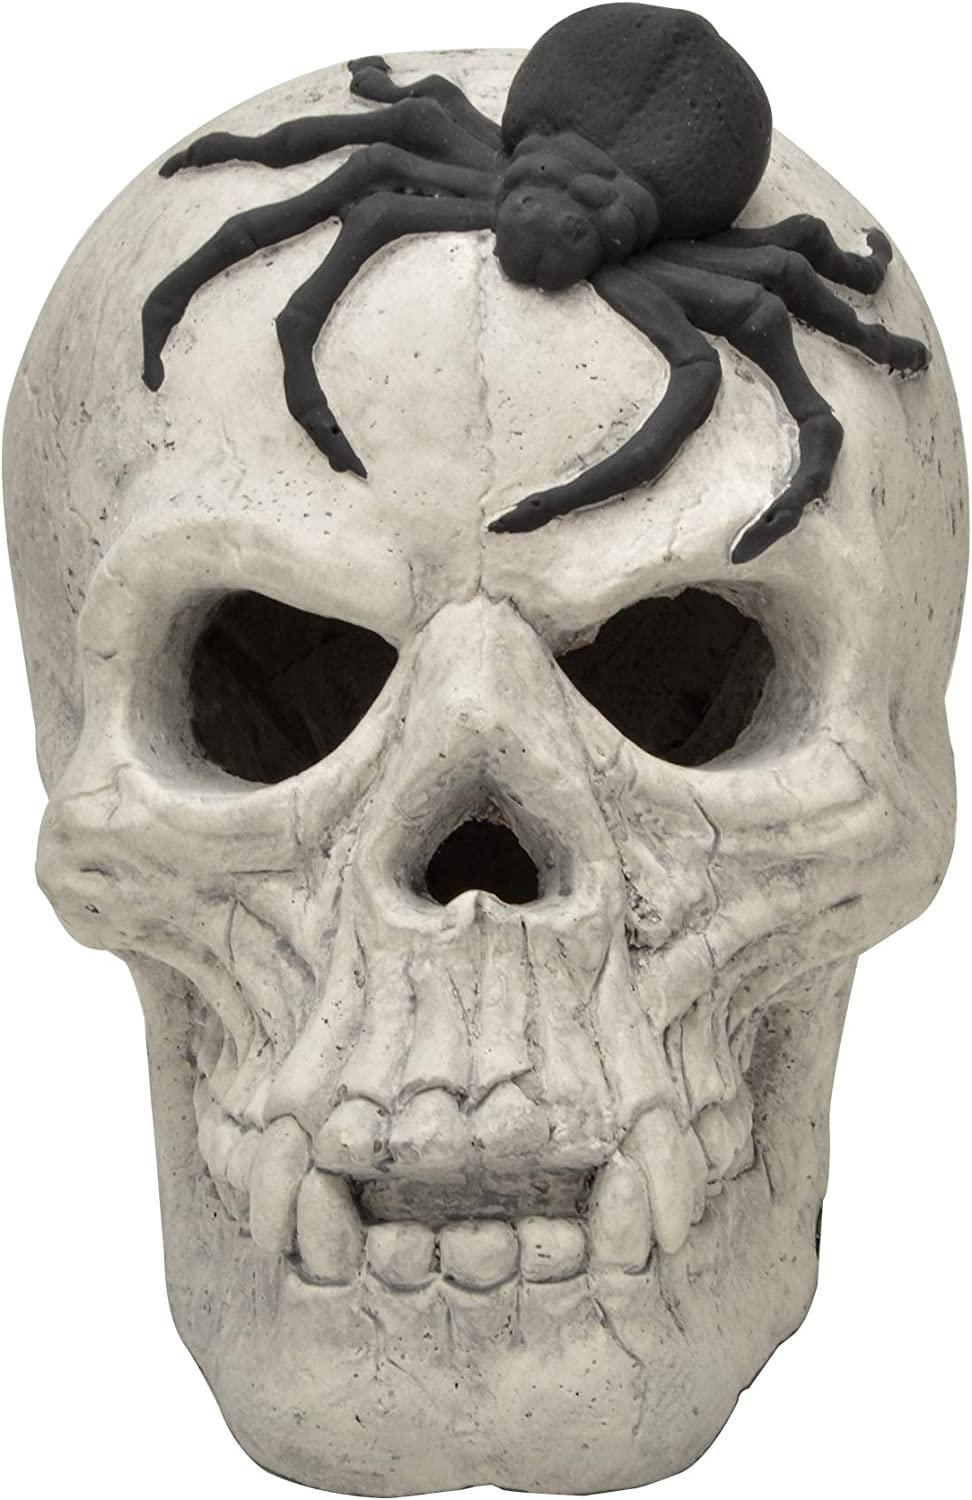 Stanbroil Popular Fire Pits Max 45% OFF Imitated Human Decor Spider Black Skull with